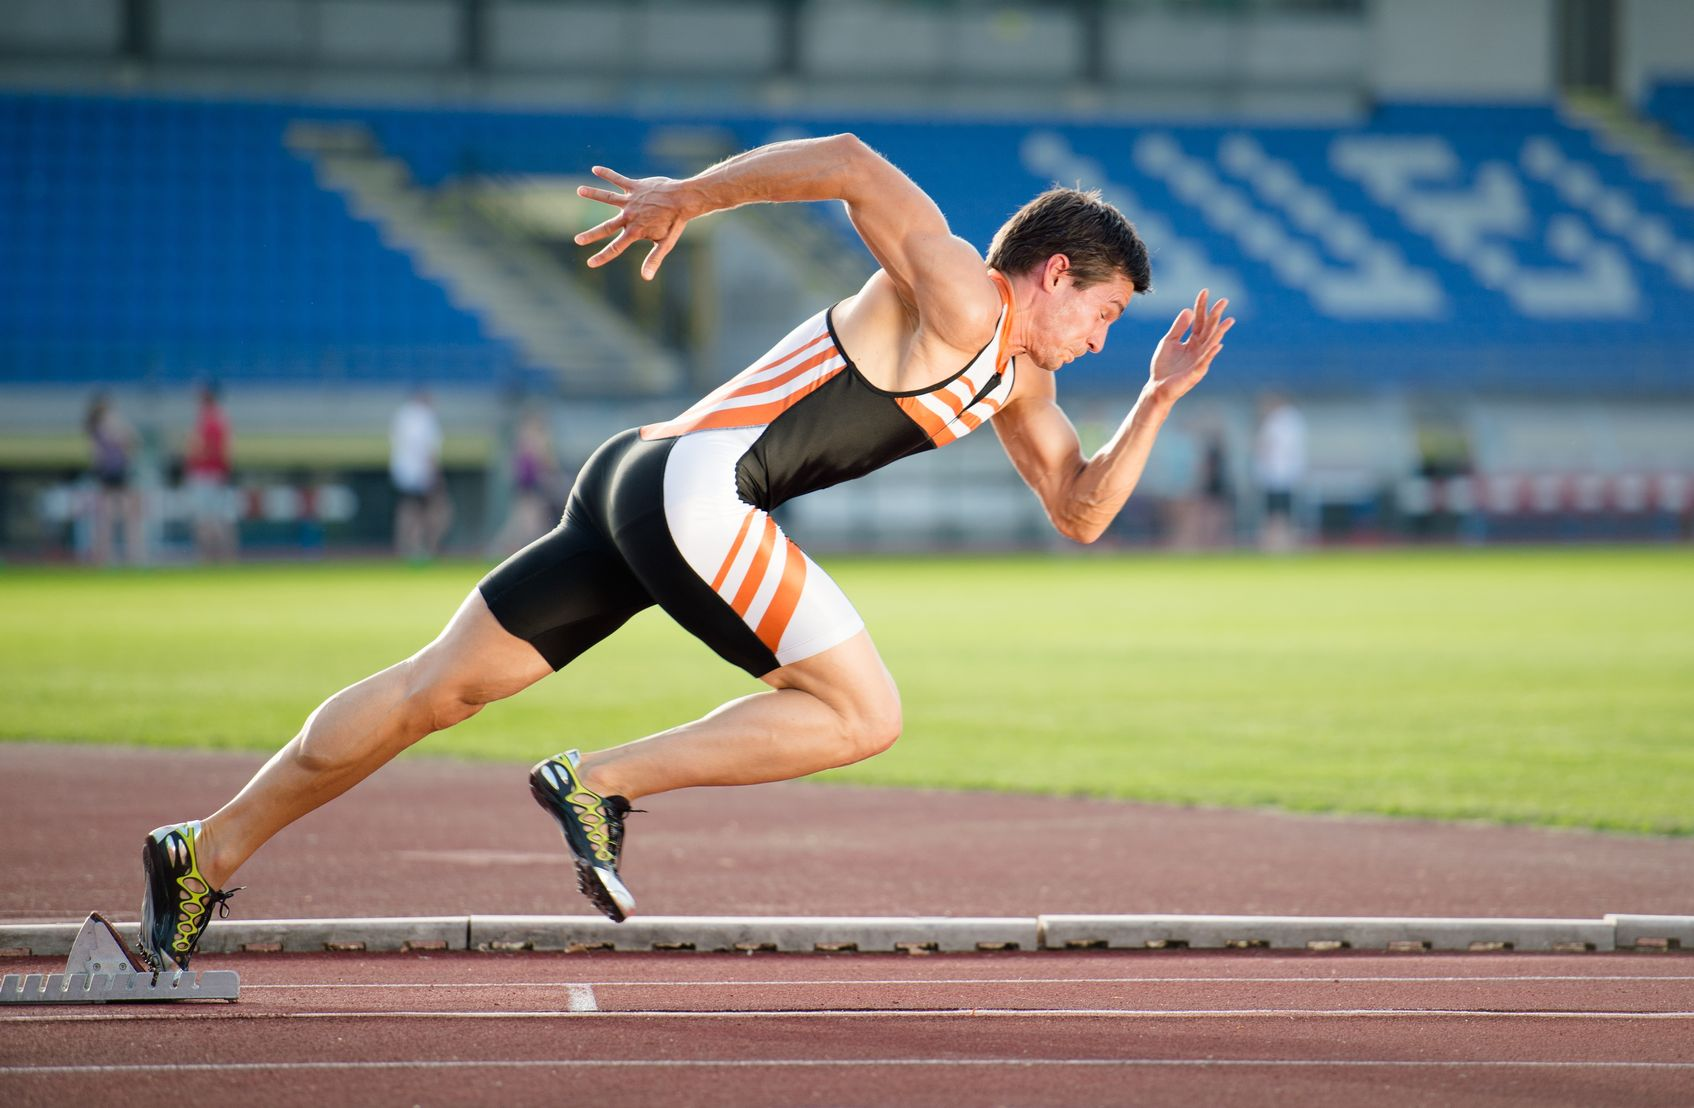 natural supplements to improve your workout if you are inspired by the Olympics